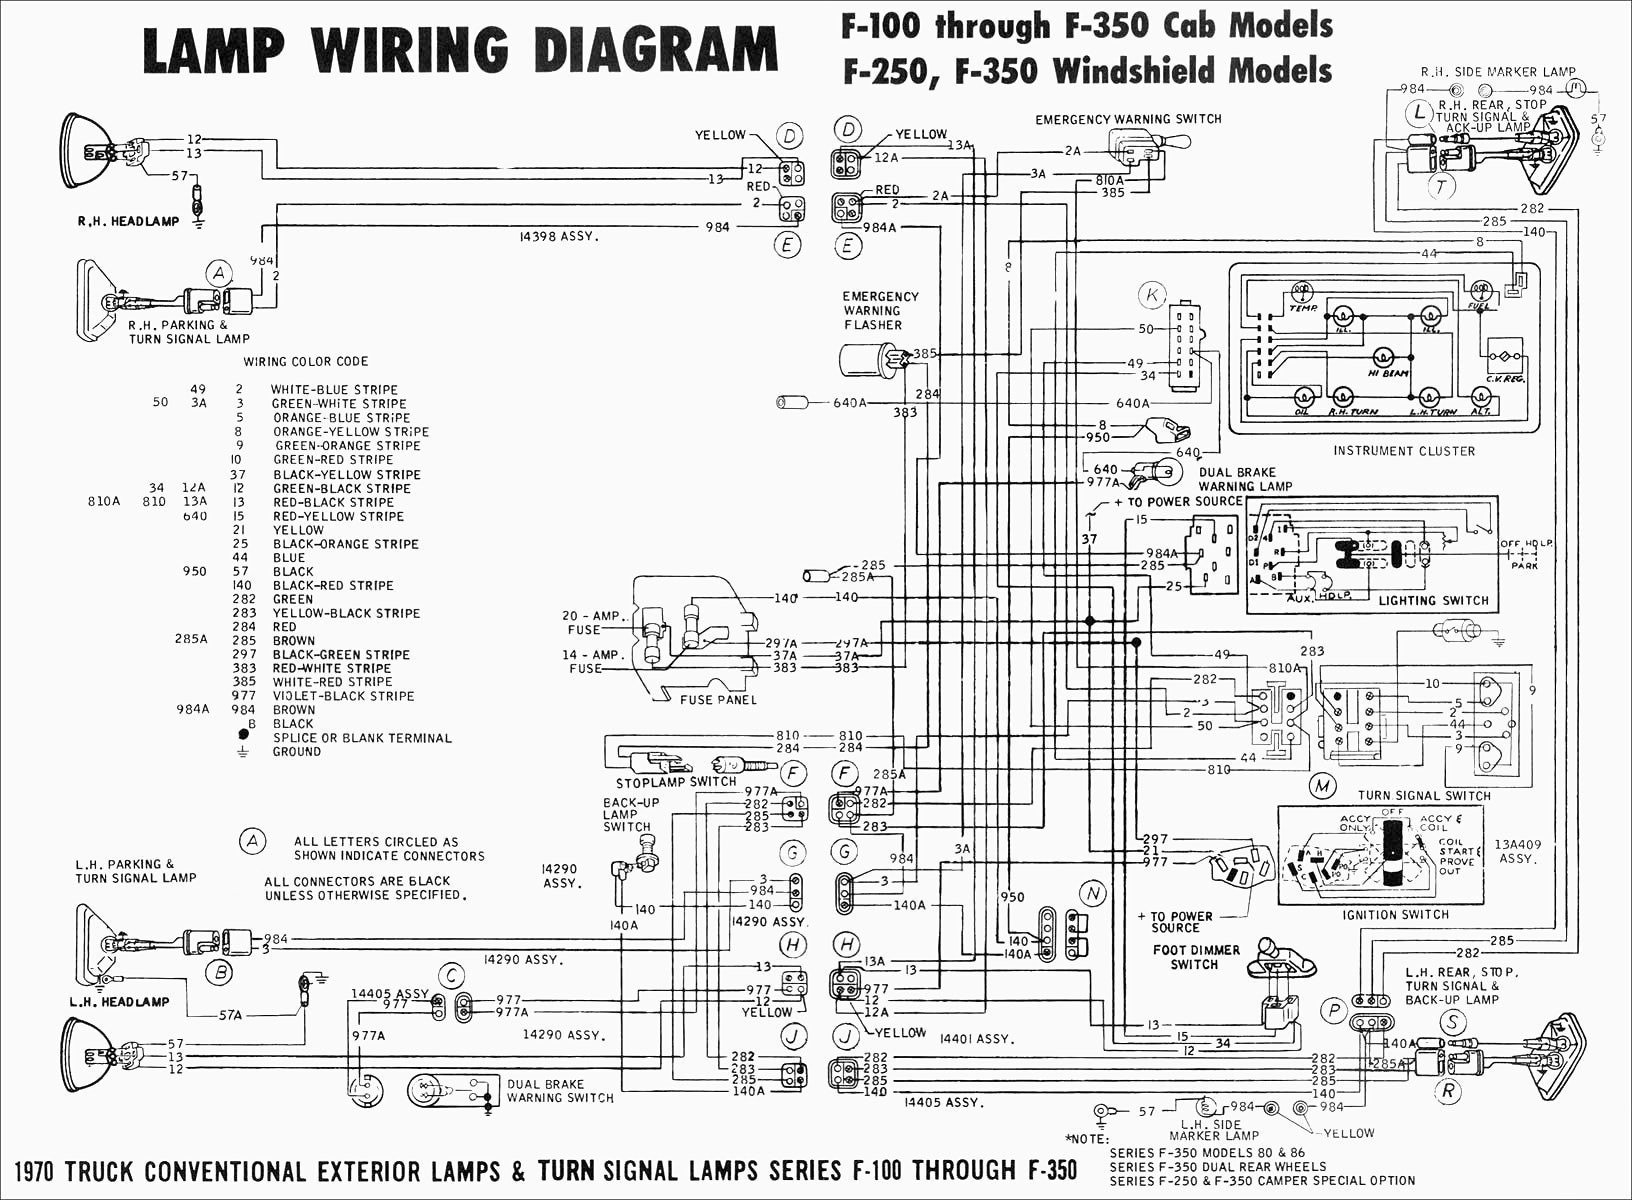 wiring jlg diagram 4933080 wiring diagram description Heavy Duty Trailer Wiring Diagram